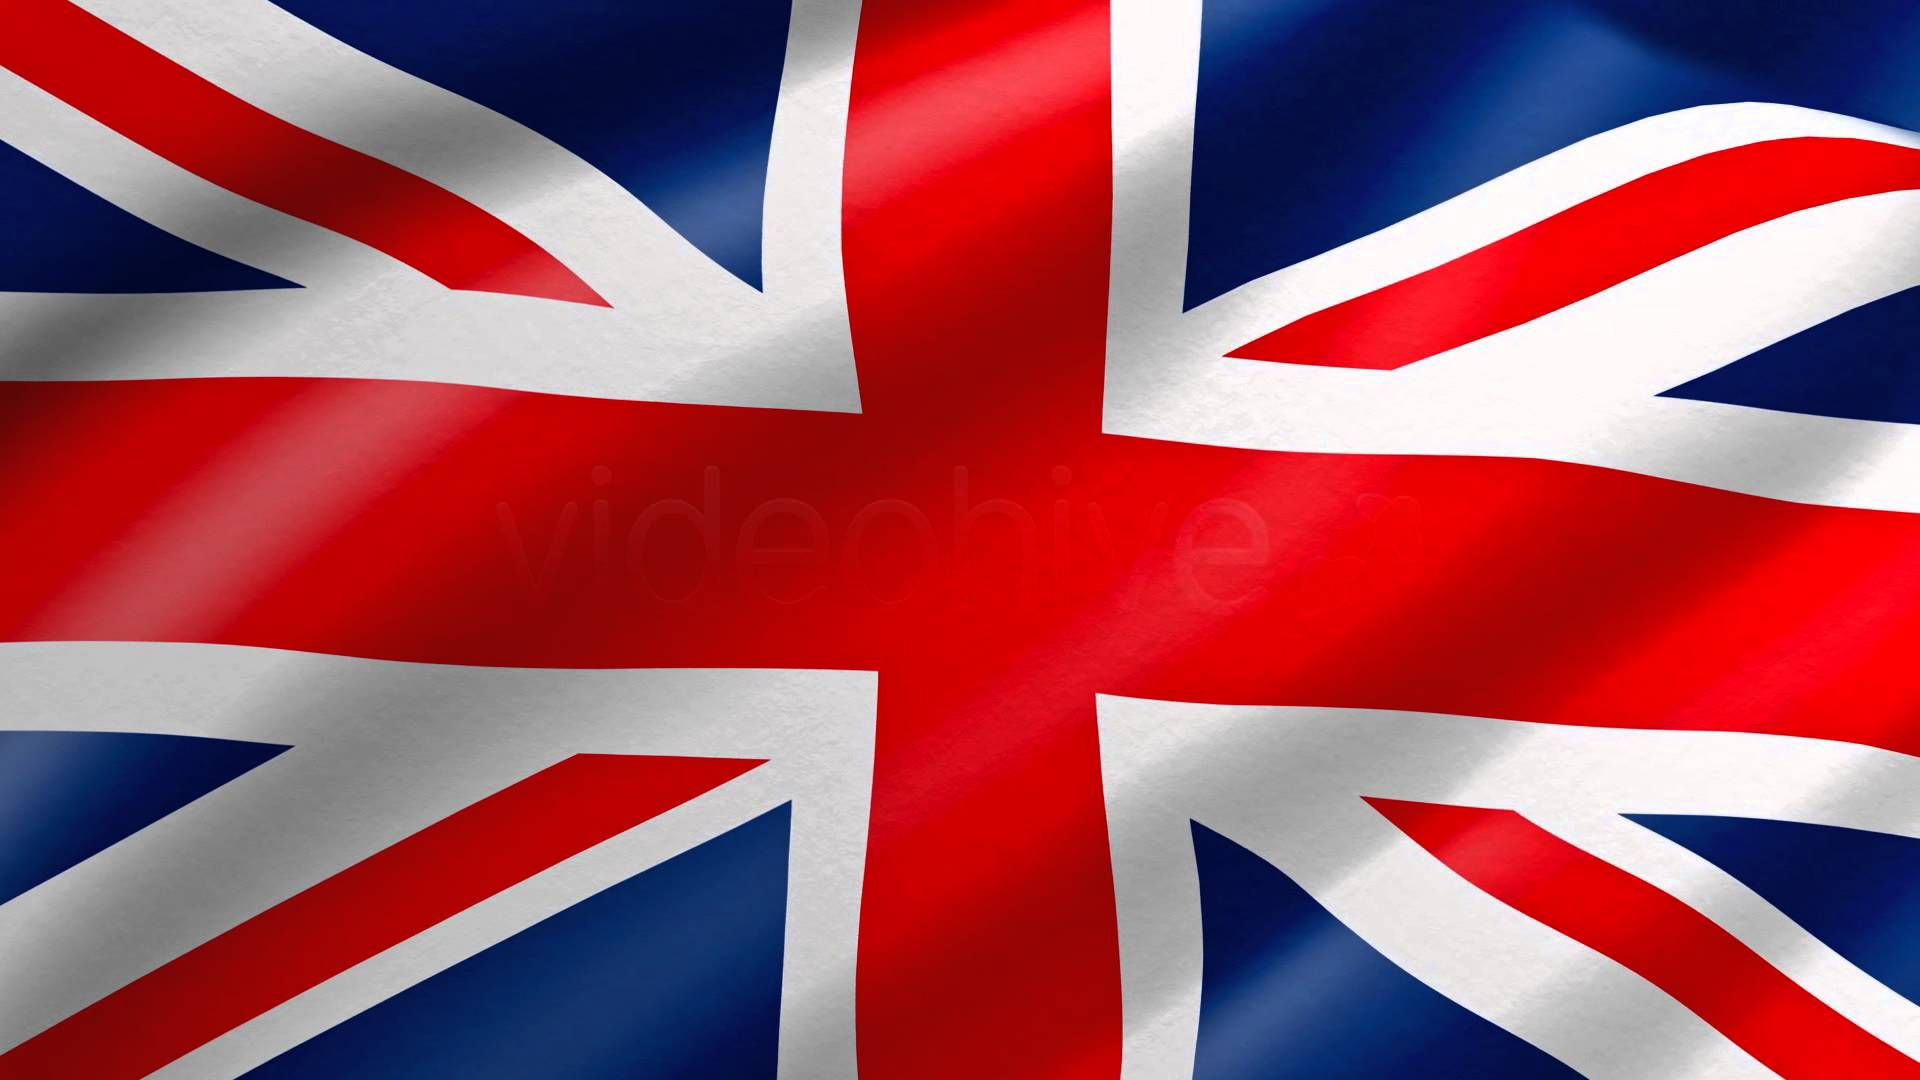 File:Flag of the United Kingdom.svg Wikipedia